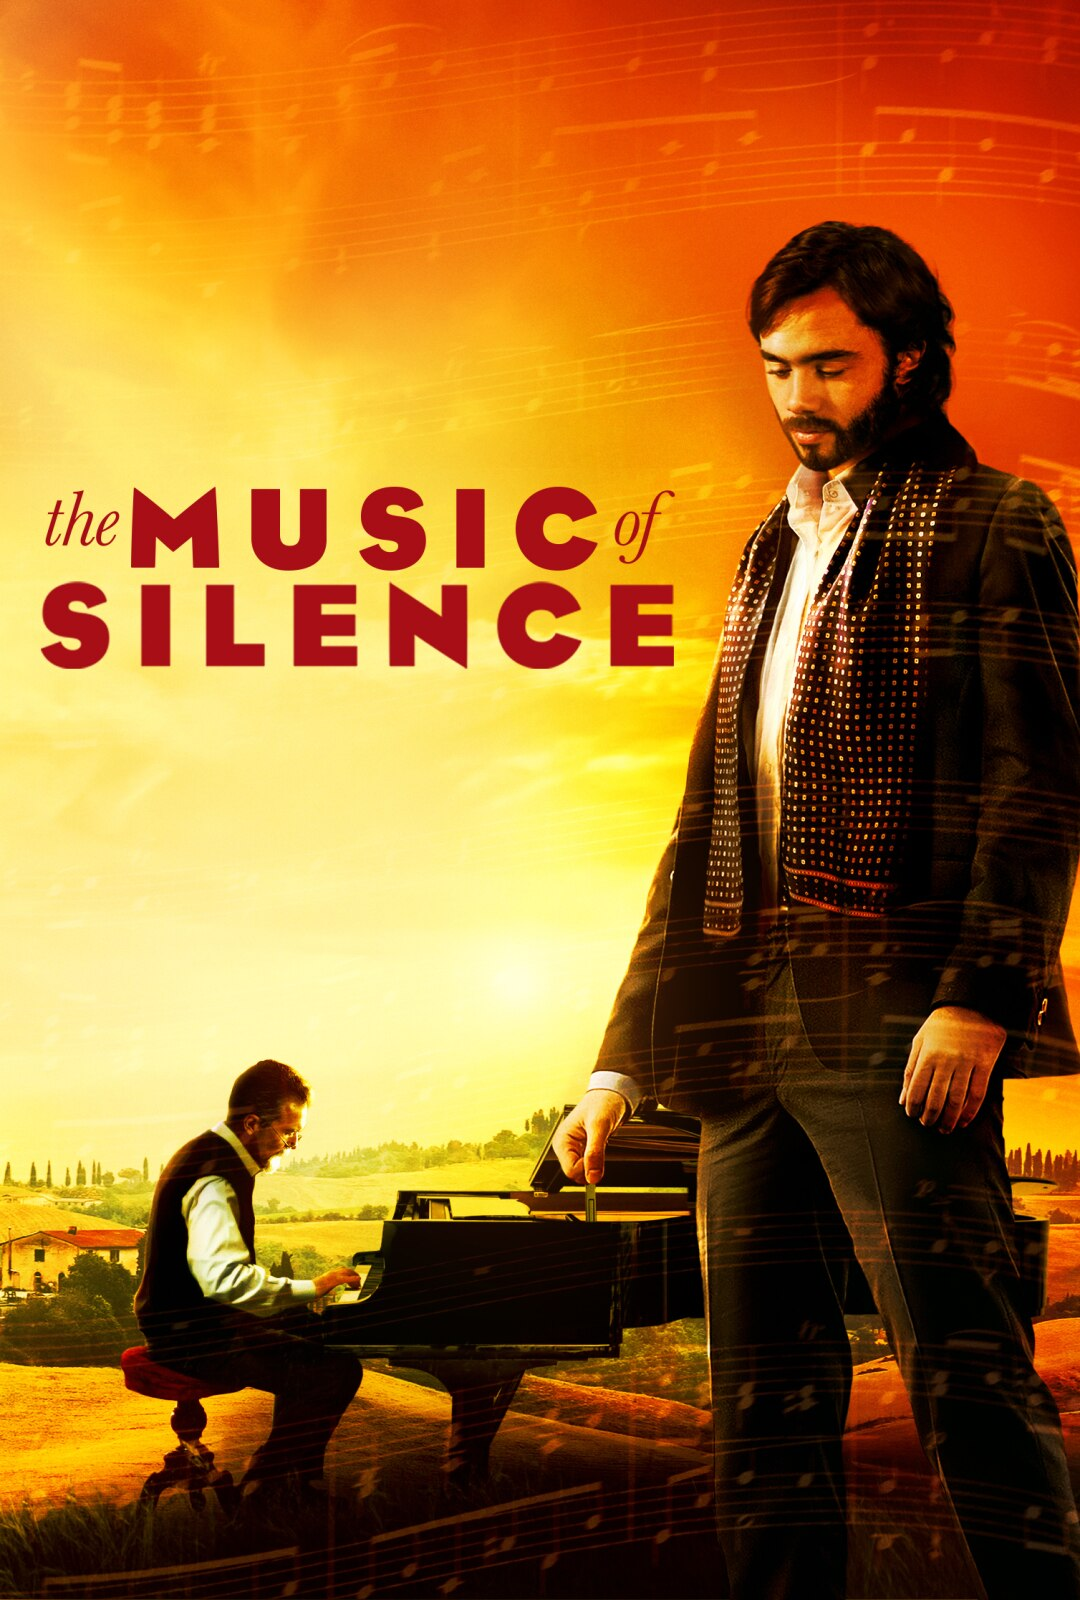 the music of silence full movie online free